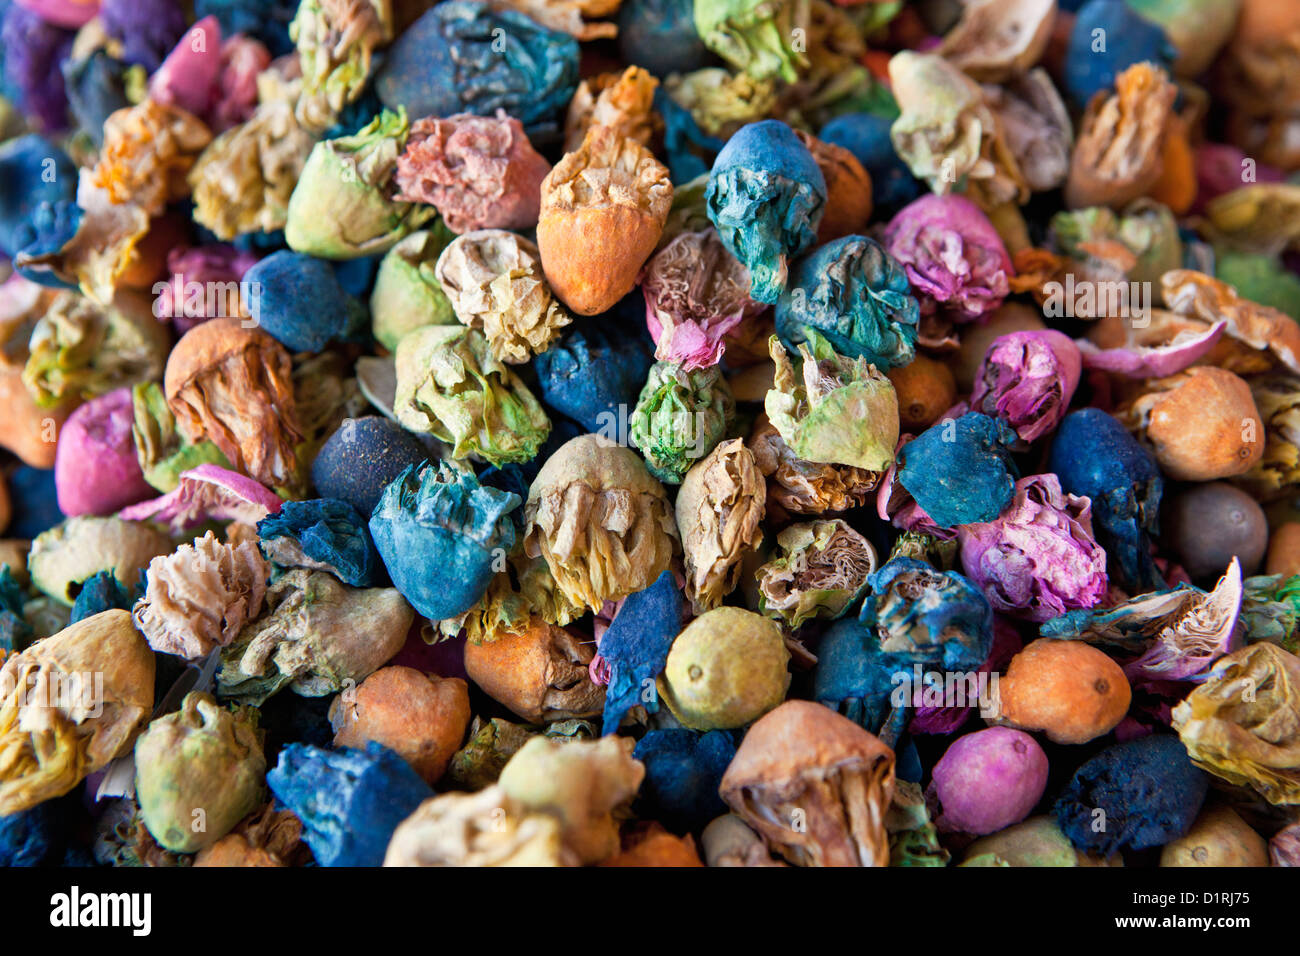 Morocco, Marrakech, colored flowers on market. - Stock Image